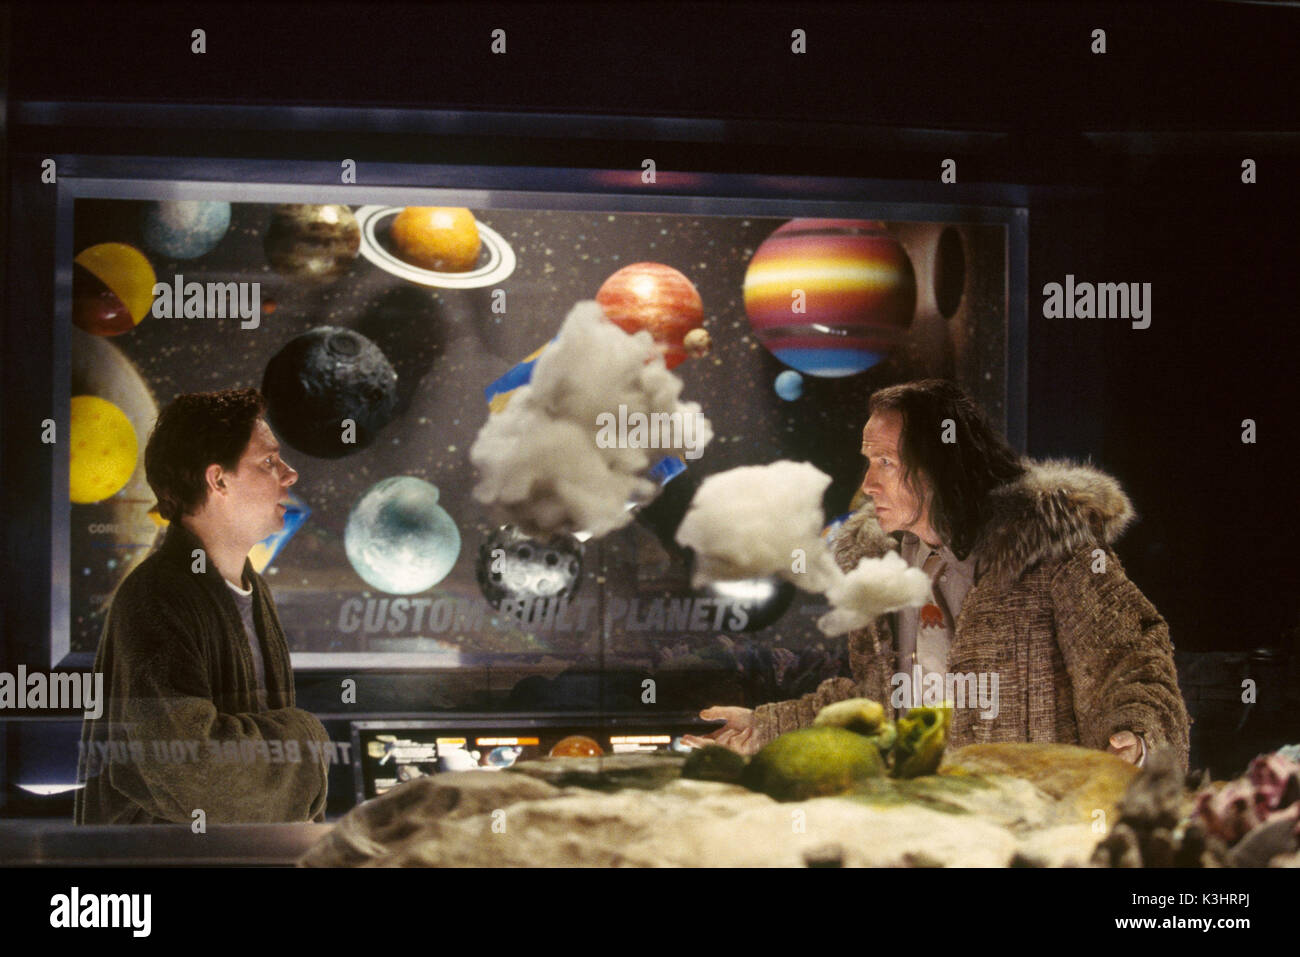 THE HITCHHIKER'S GUIDE TO THE GALAXY [US / BR 2005]  MARTIN FREEMAN, BILL NIGHY     Date: 2005 Stock Photo